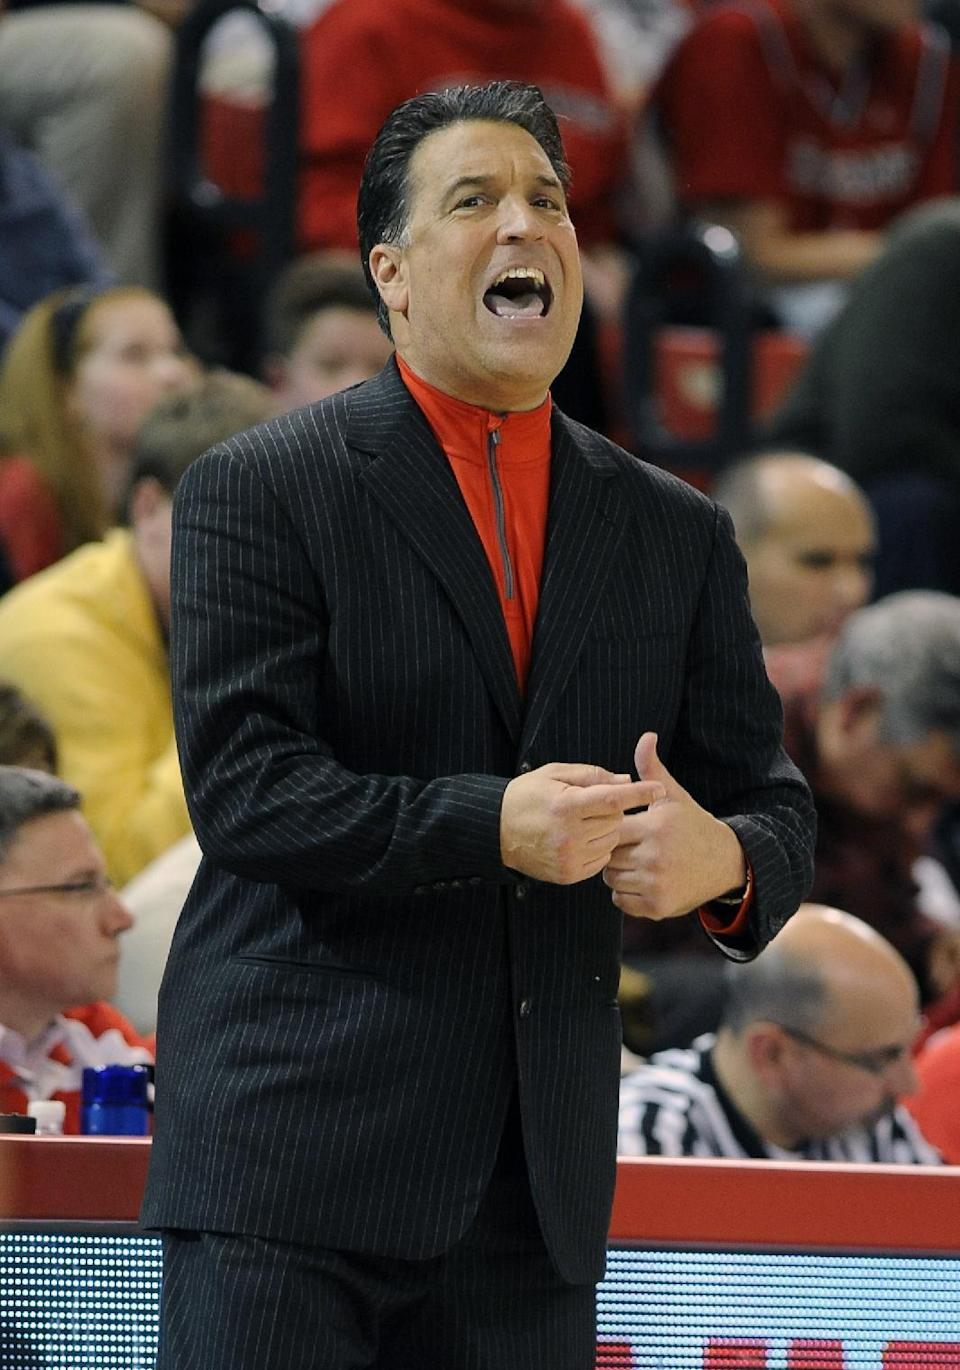 St. John's head coach Steve Lavin reacts to his team during the second half of an NCAA college basketball game against Long Beach State on Monday, Dec. 22, 2014 in New York. St. John's won 66-49. (AP Photo/Kathy Kmonicek)